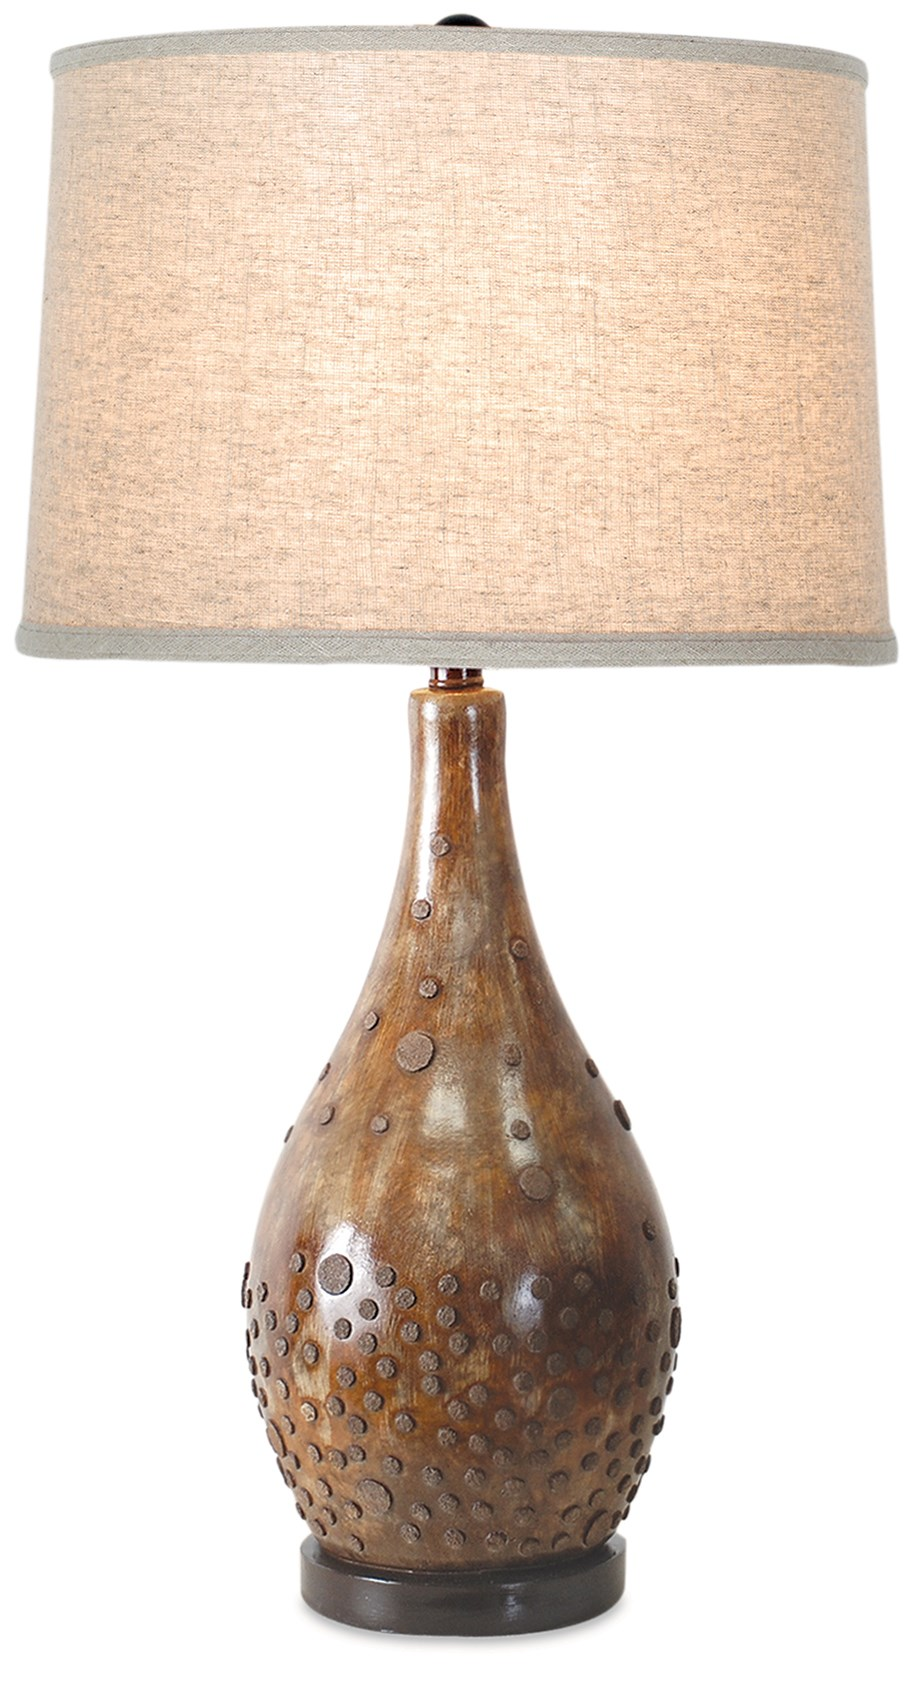 Artisan Lighting Home Decor Inc We are the ONLY